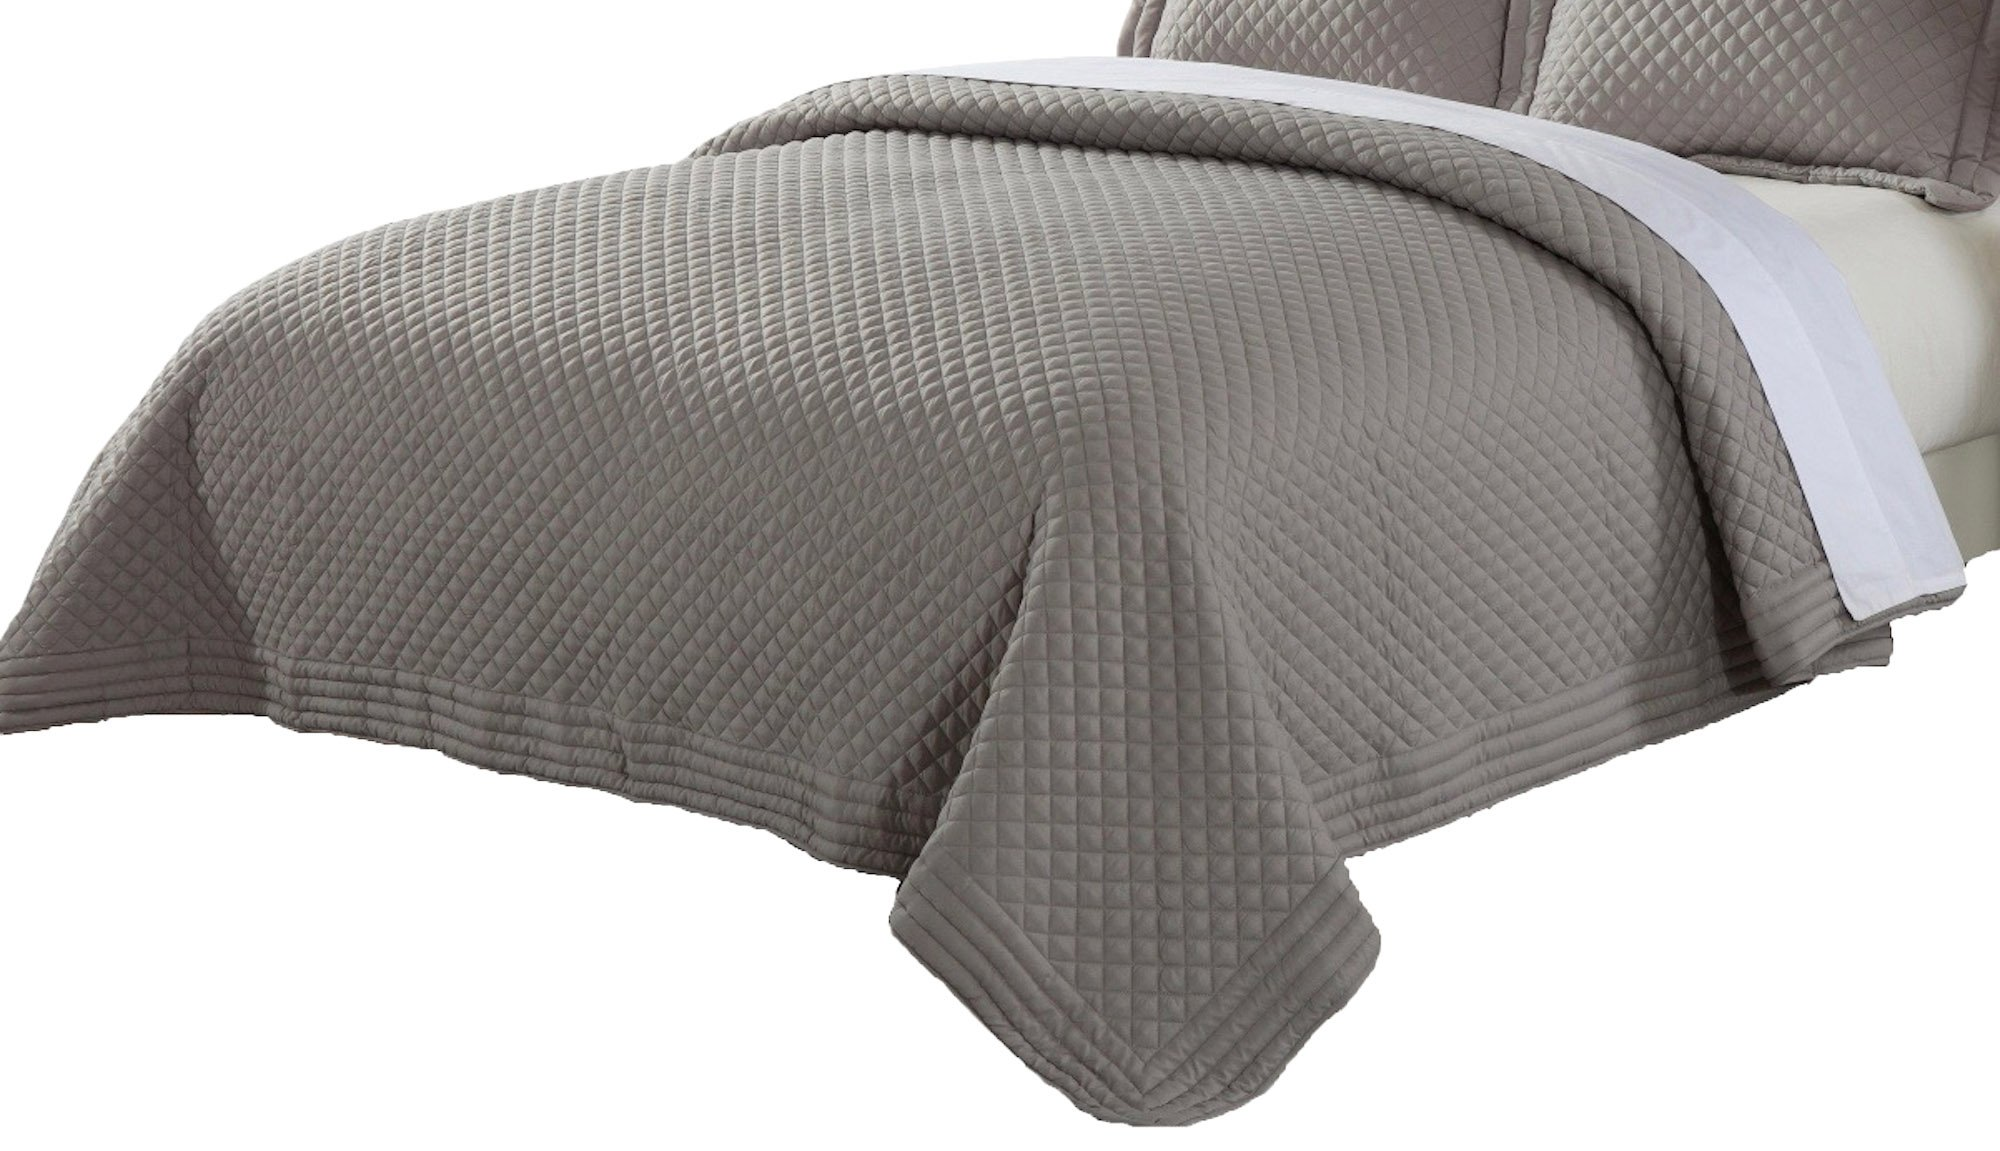 Lotus Home Microfiber Stain and Water Resistant Diamond Quilt, Full/Queen, Silver